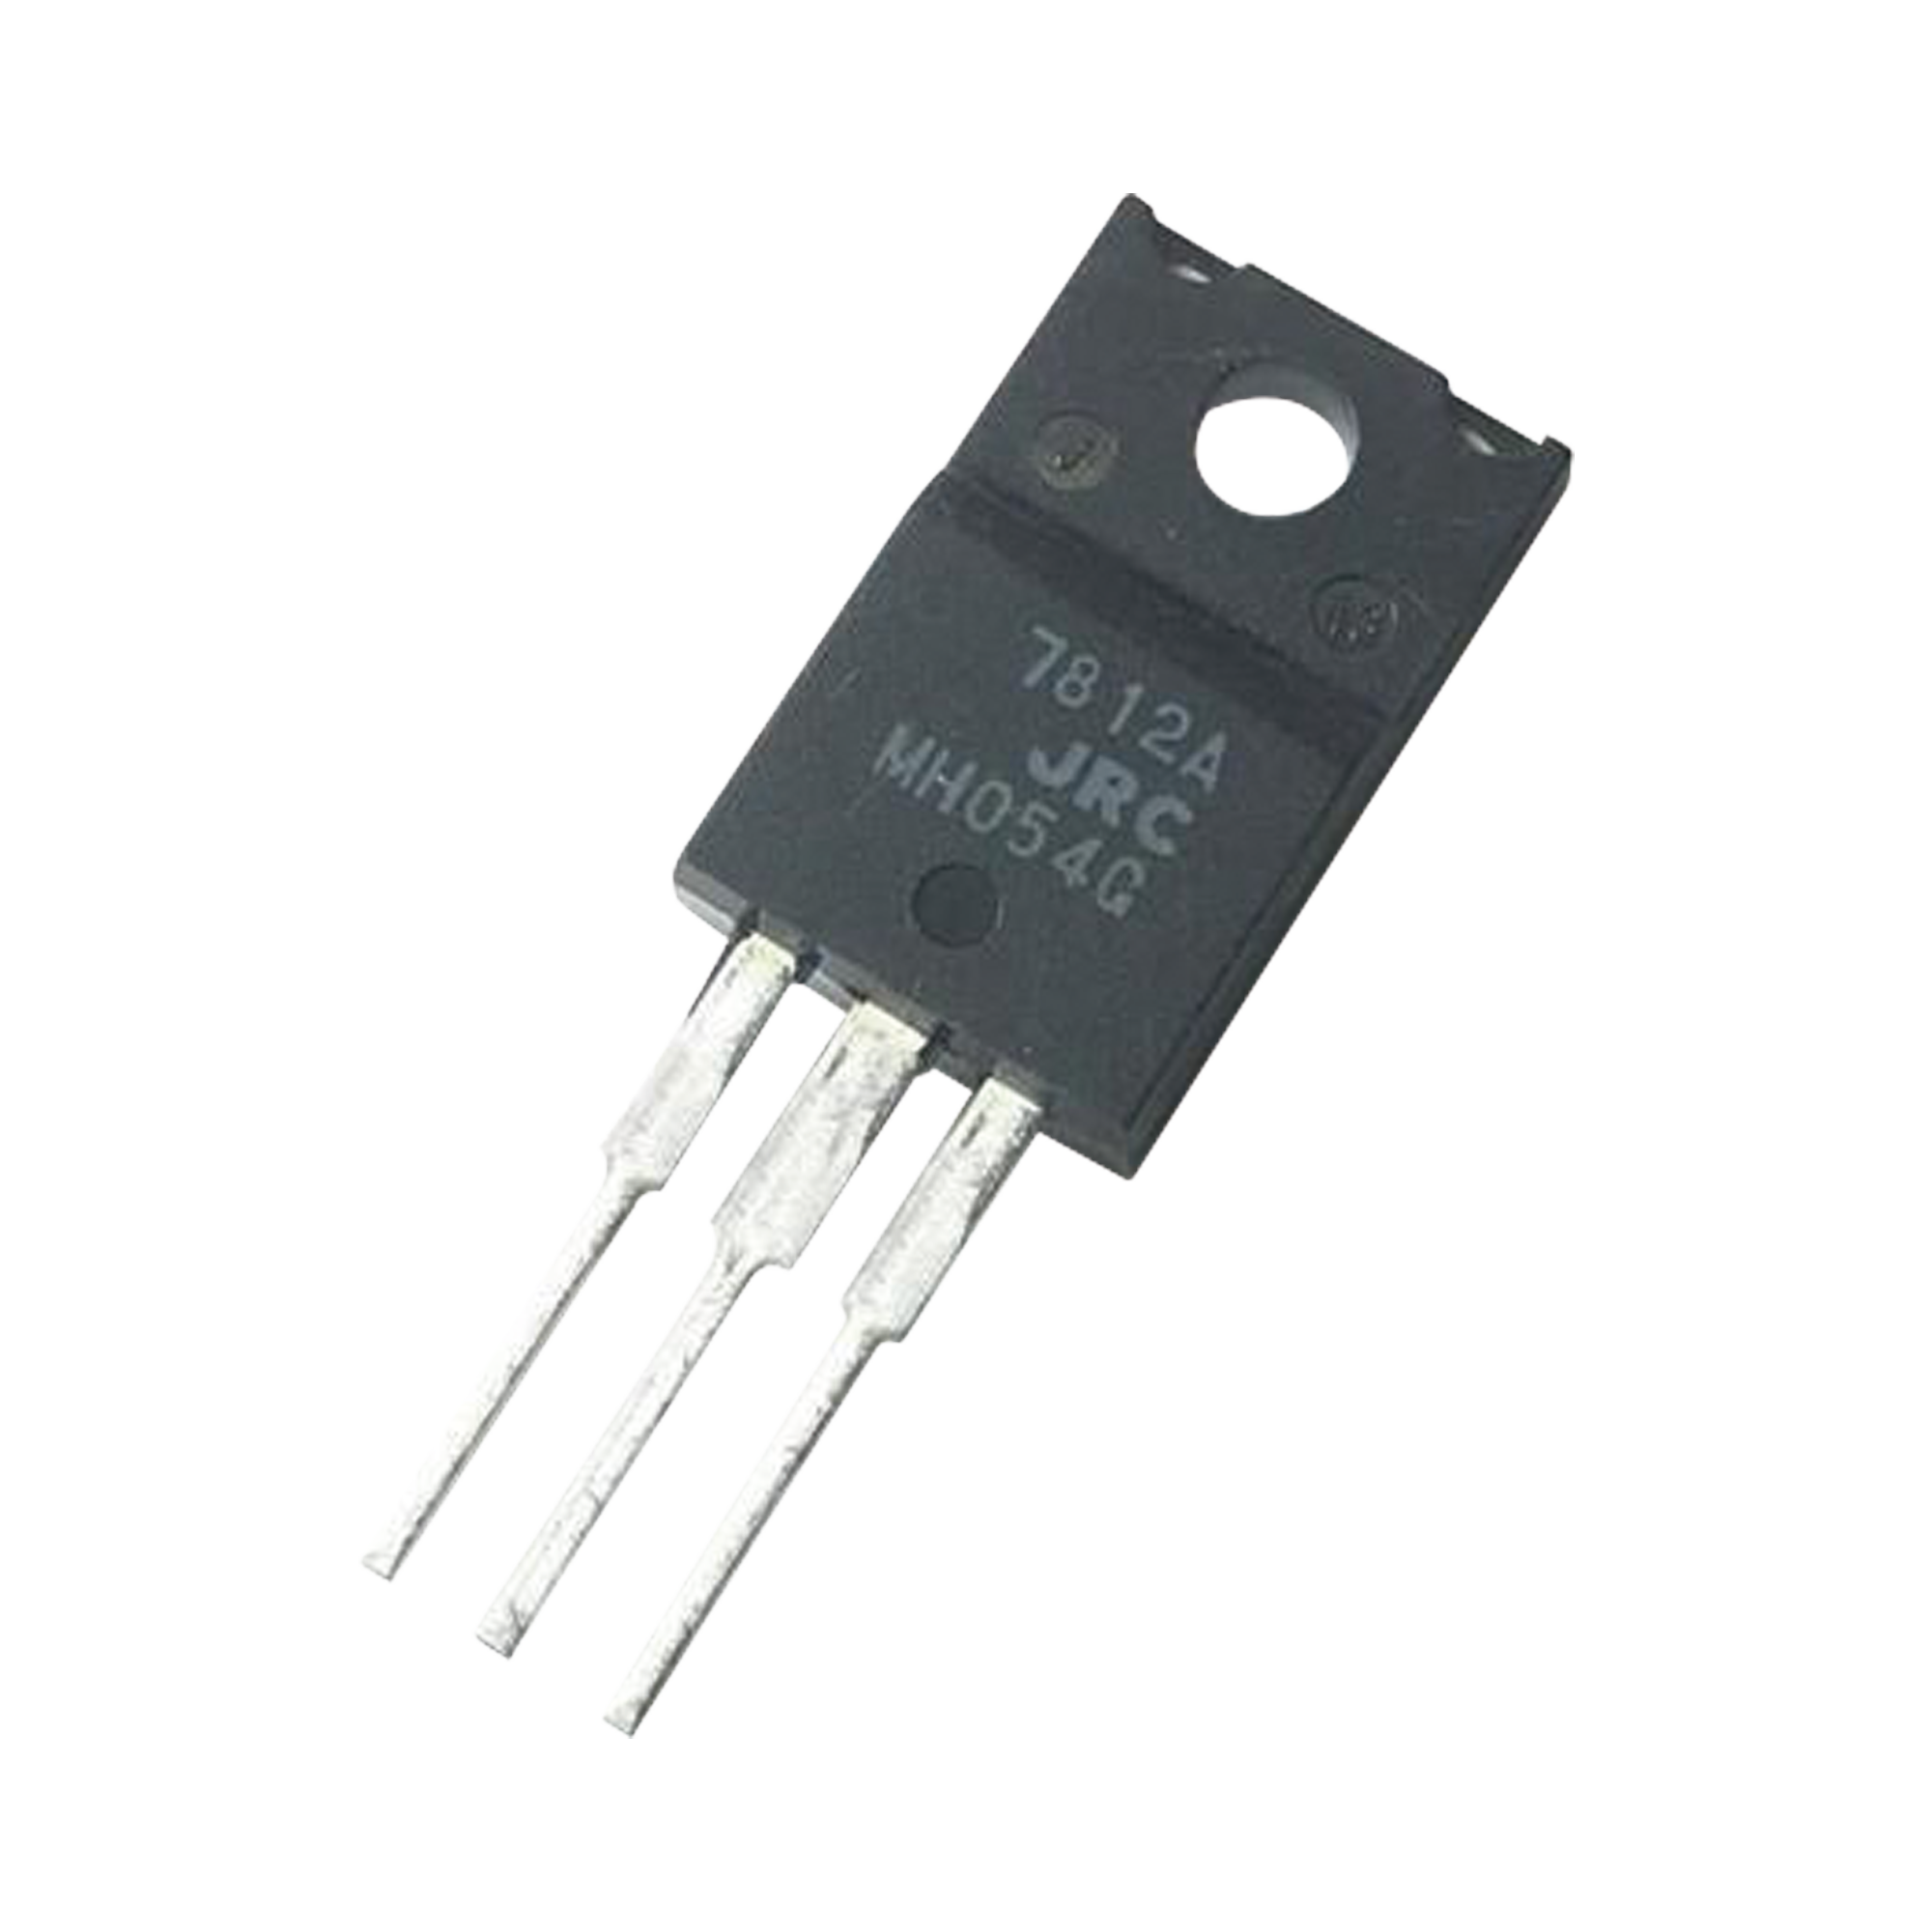 Transistor Regulador de 12 Vcd, 1.5 Amp., TO-220-3